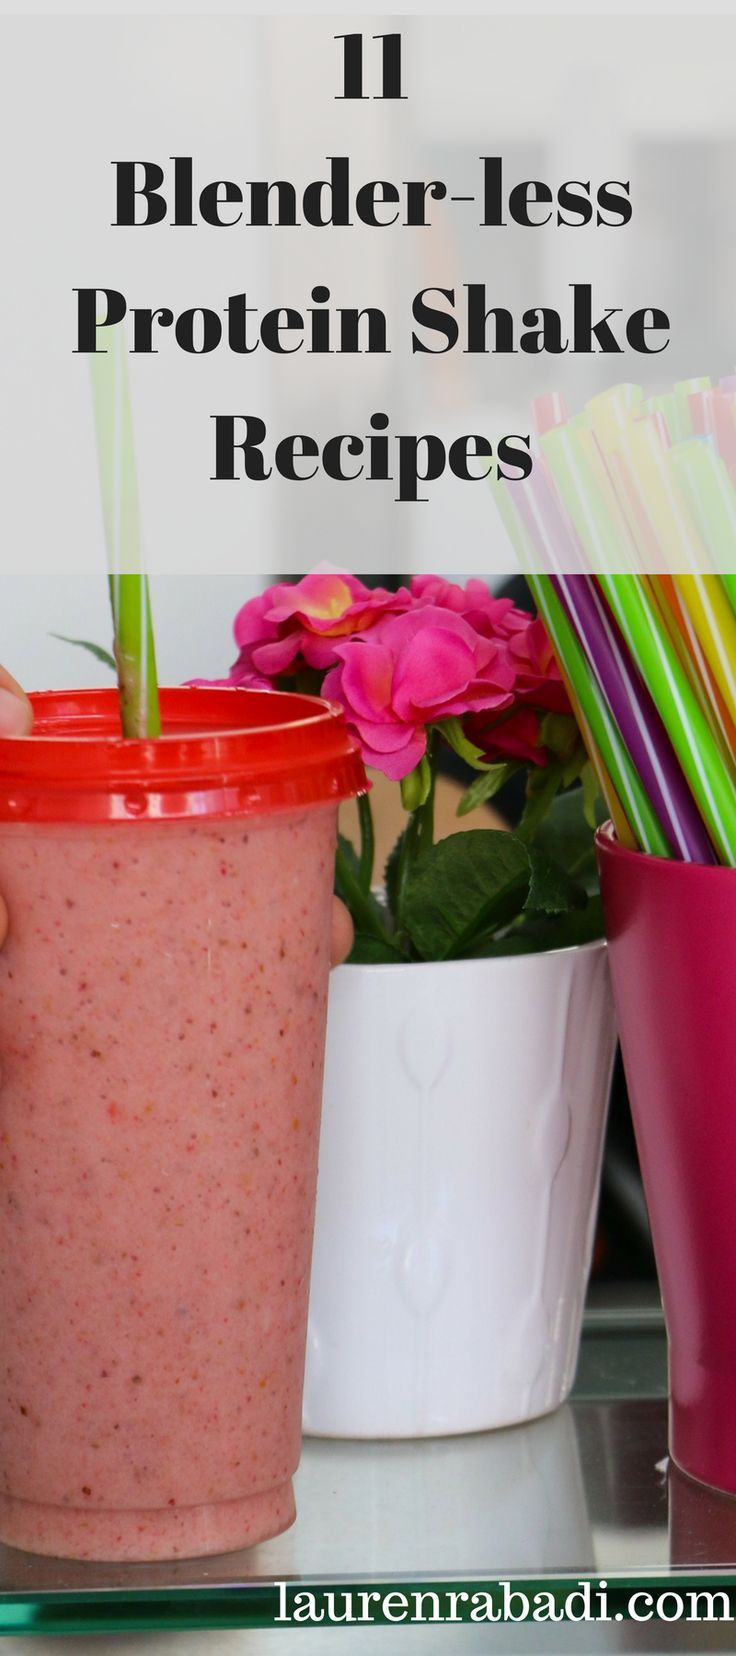 11 Blender-less Protein Shake Recipes Using My Blender Bottle #proteinshake #weightloss #healthyrecipes